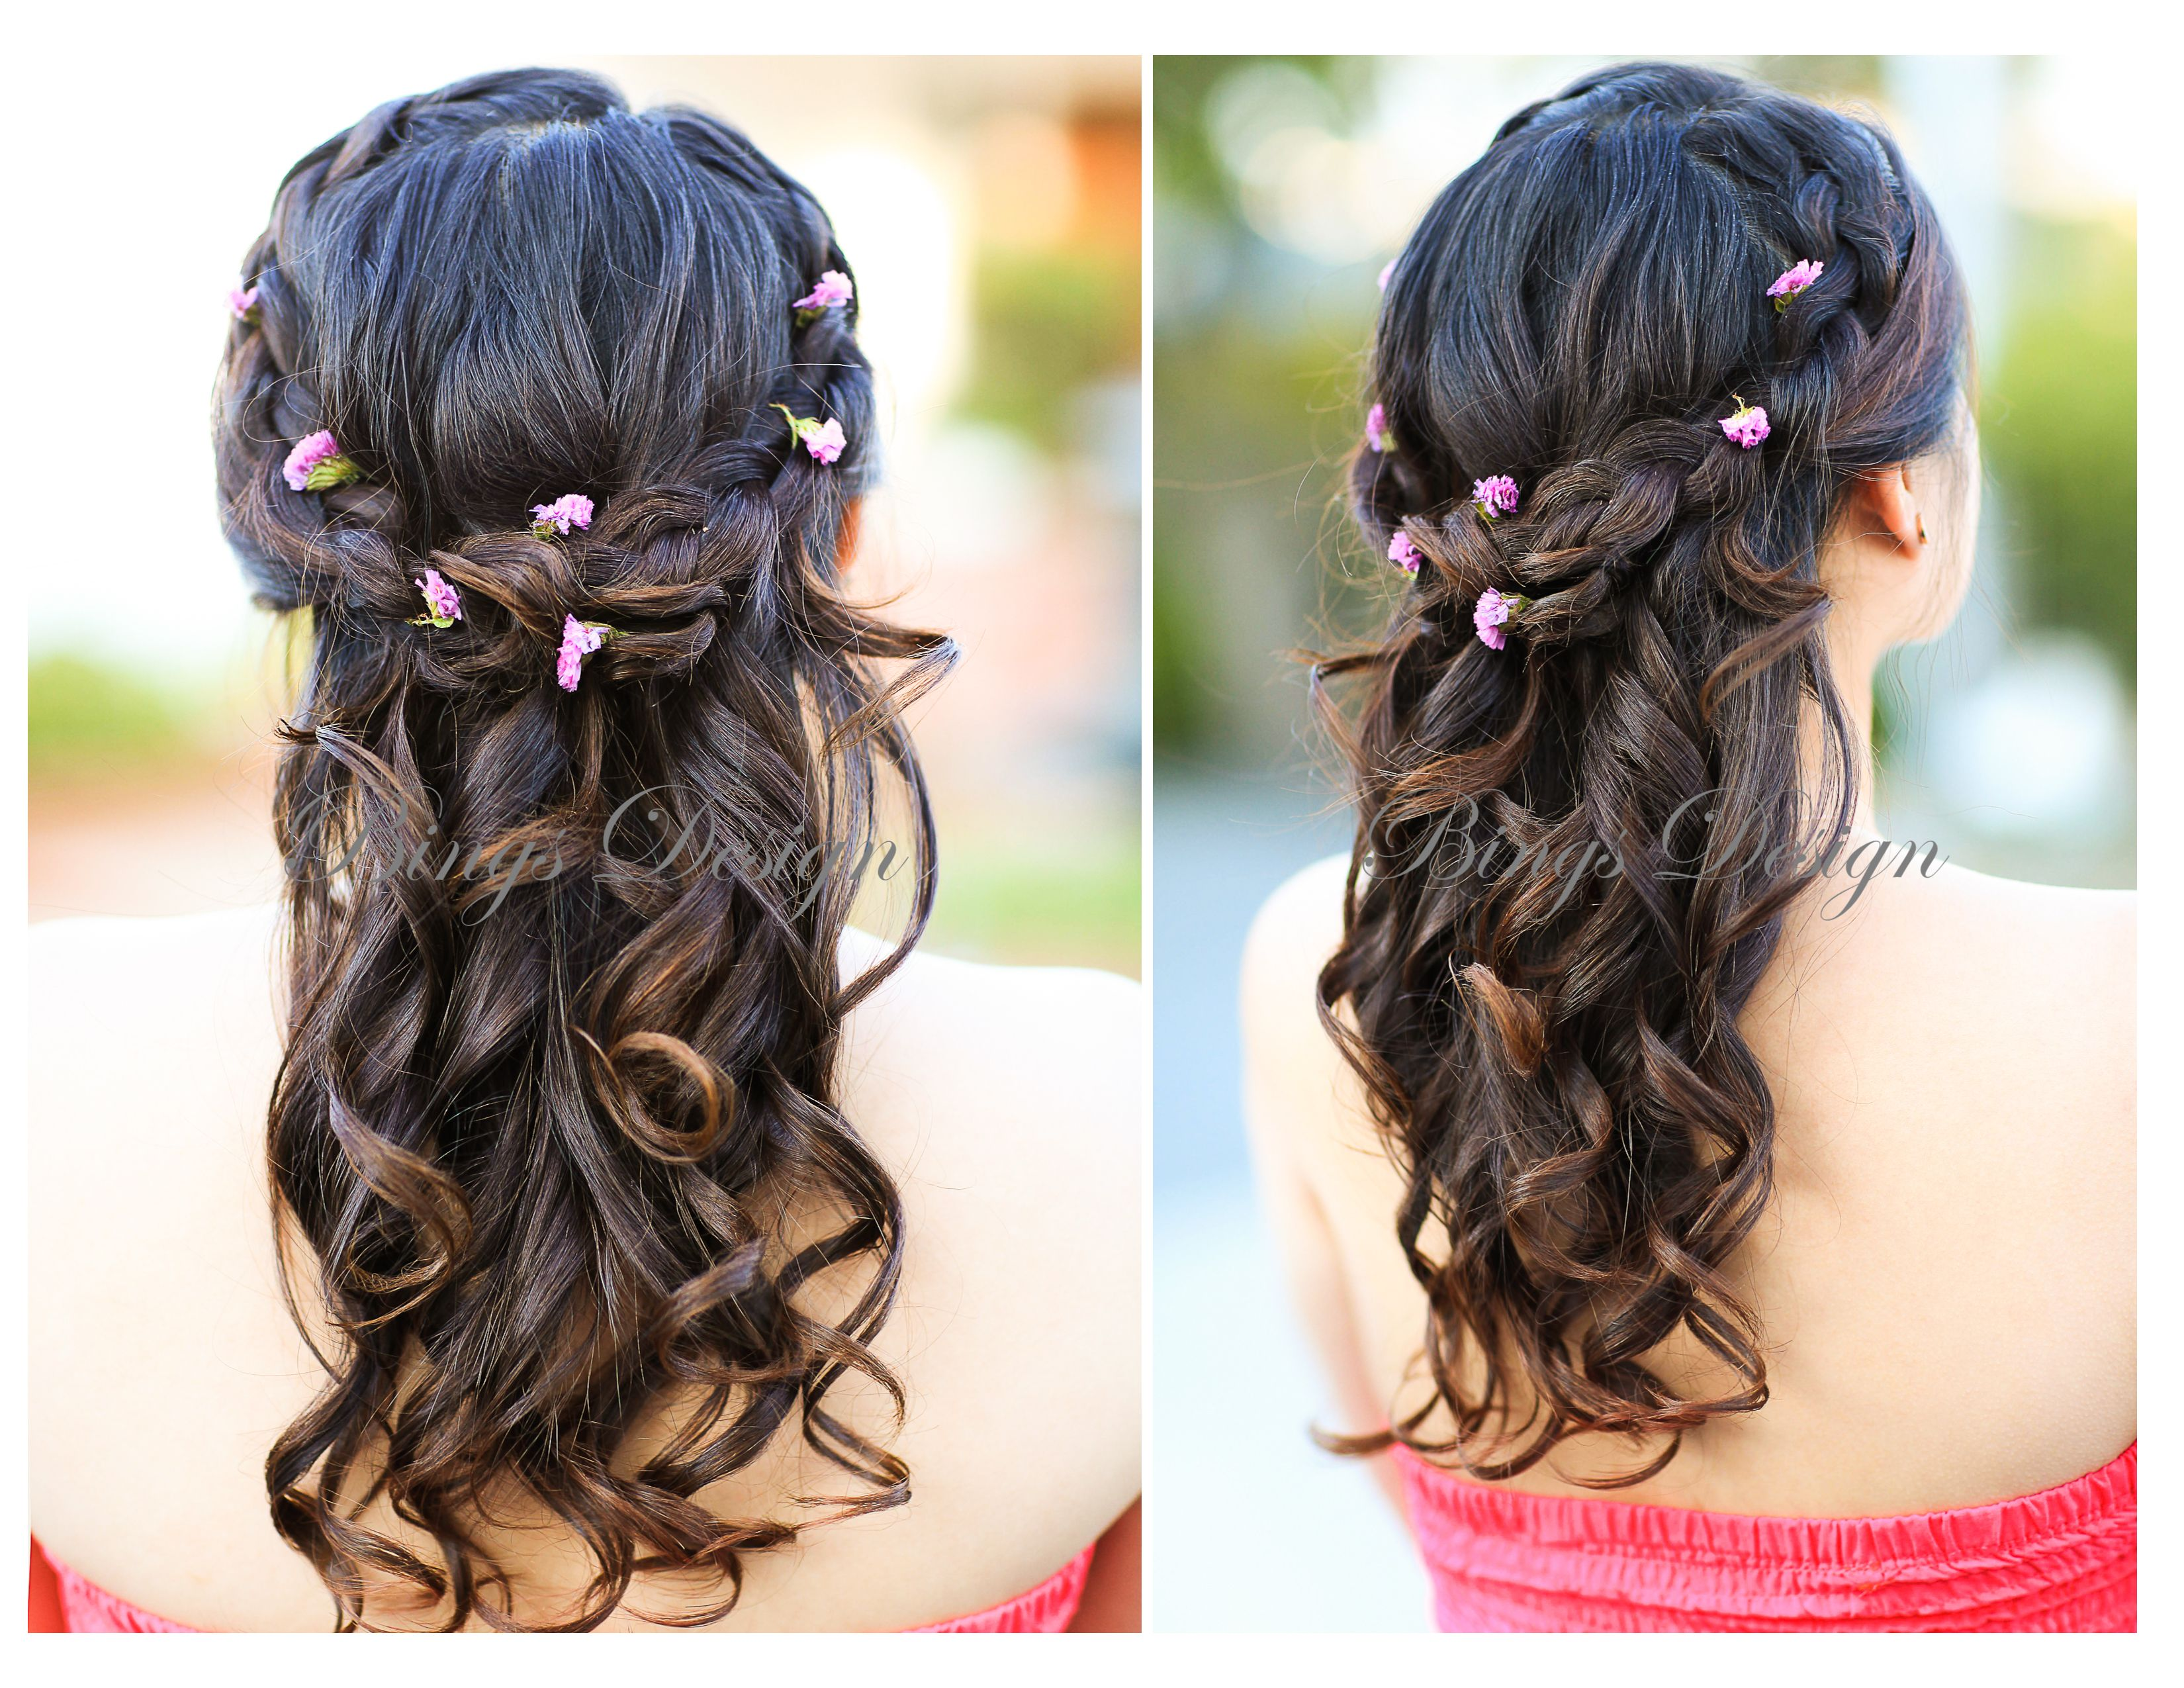 hairstyle for long hair www.bingsdesign | sweet 16❤ | pinterest